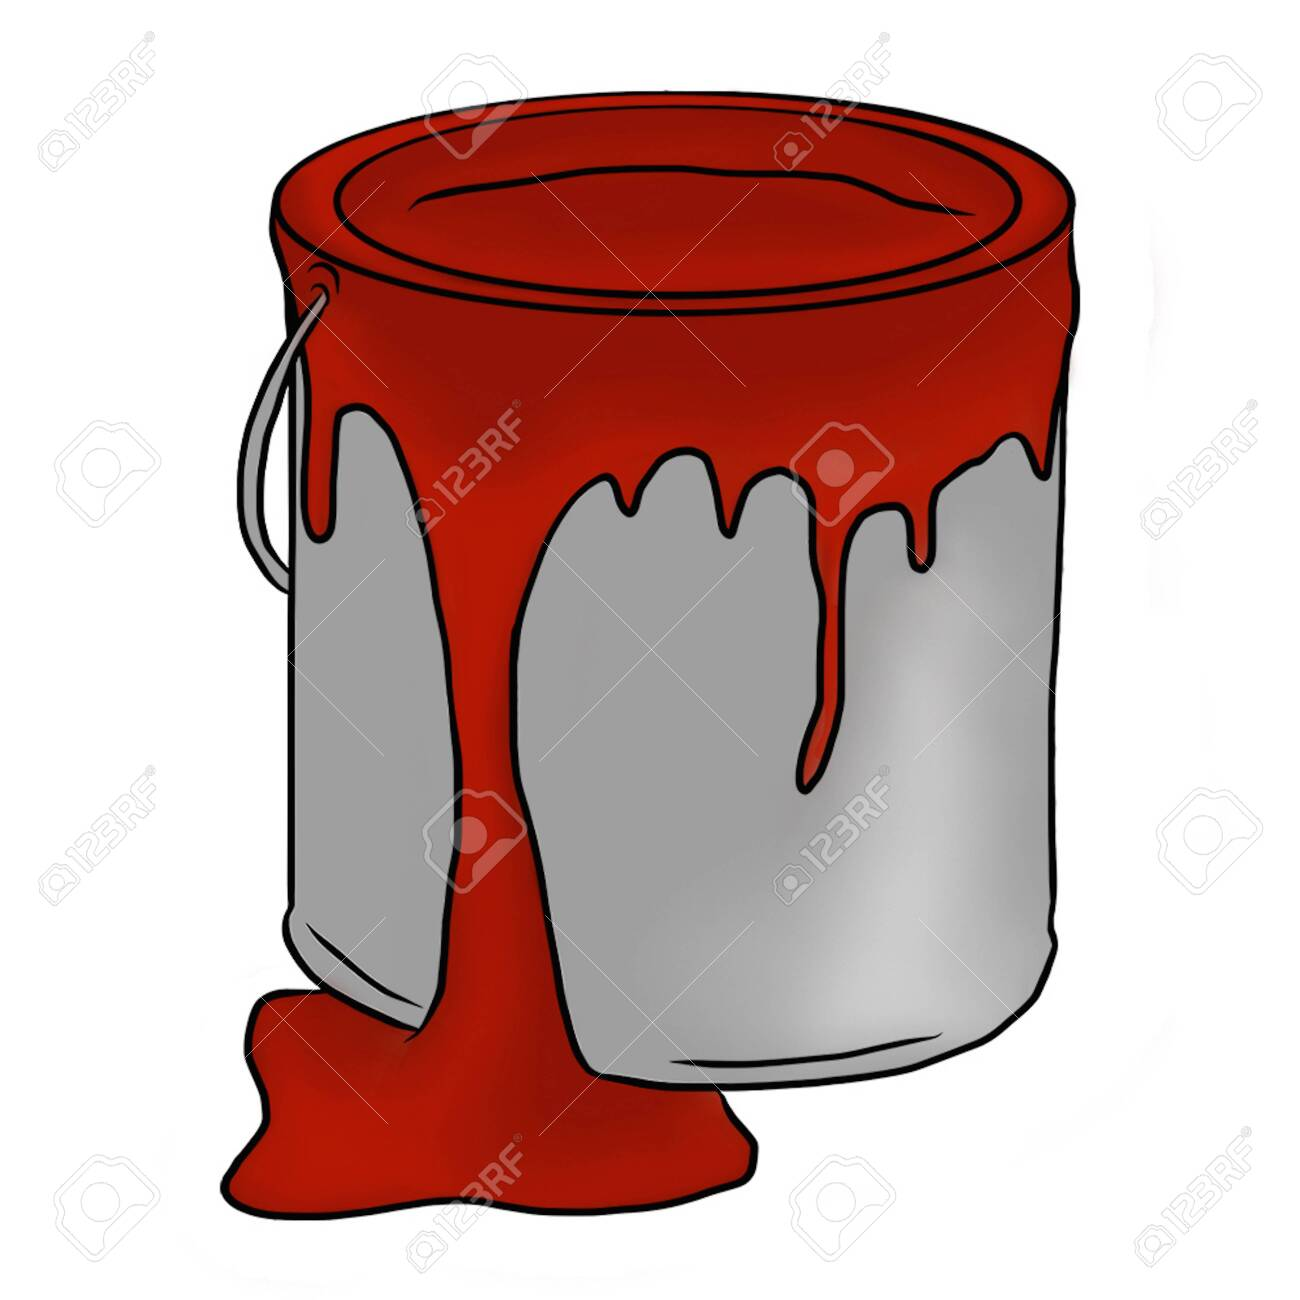 Paint Bucket Illustration Stock Photo Picture And Royalty Free Image Image 115411793